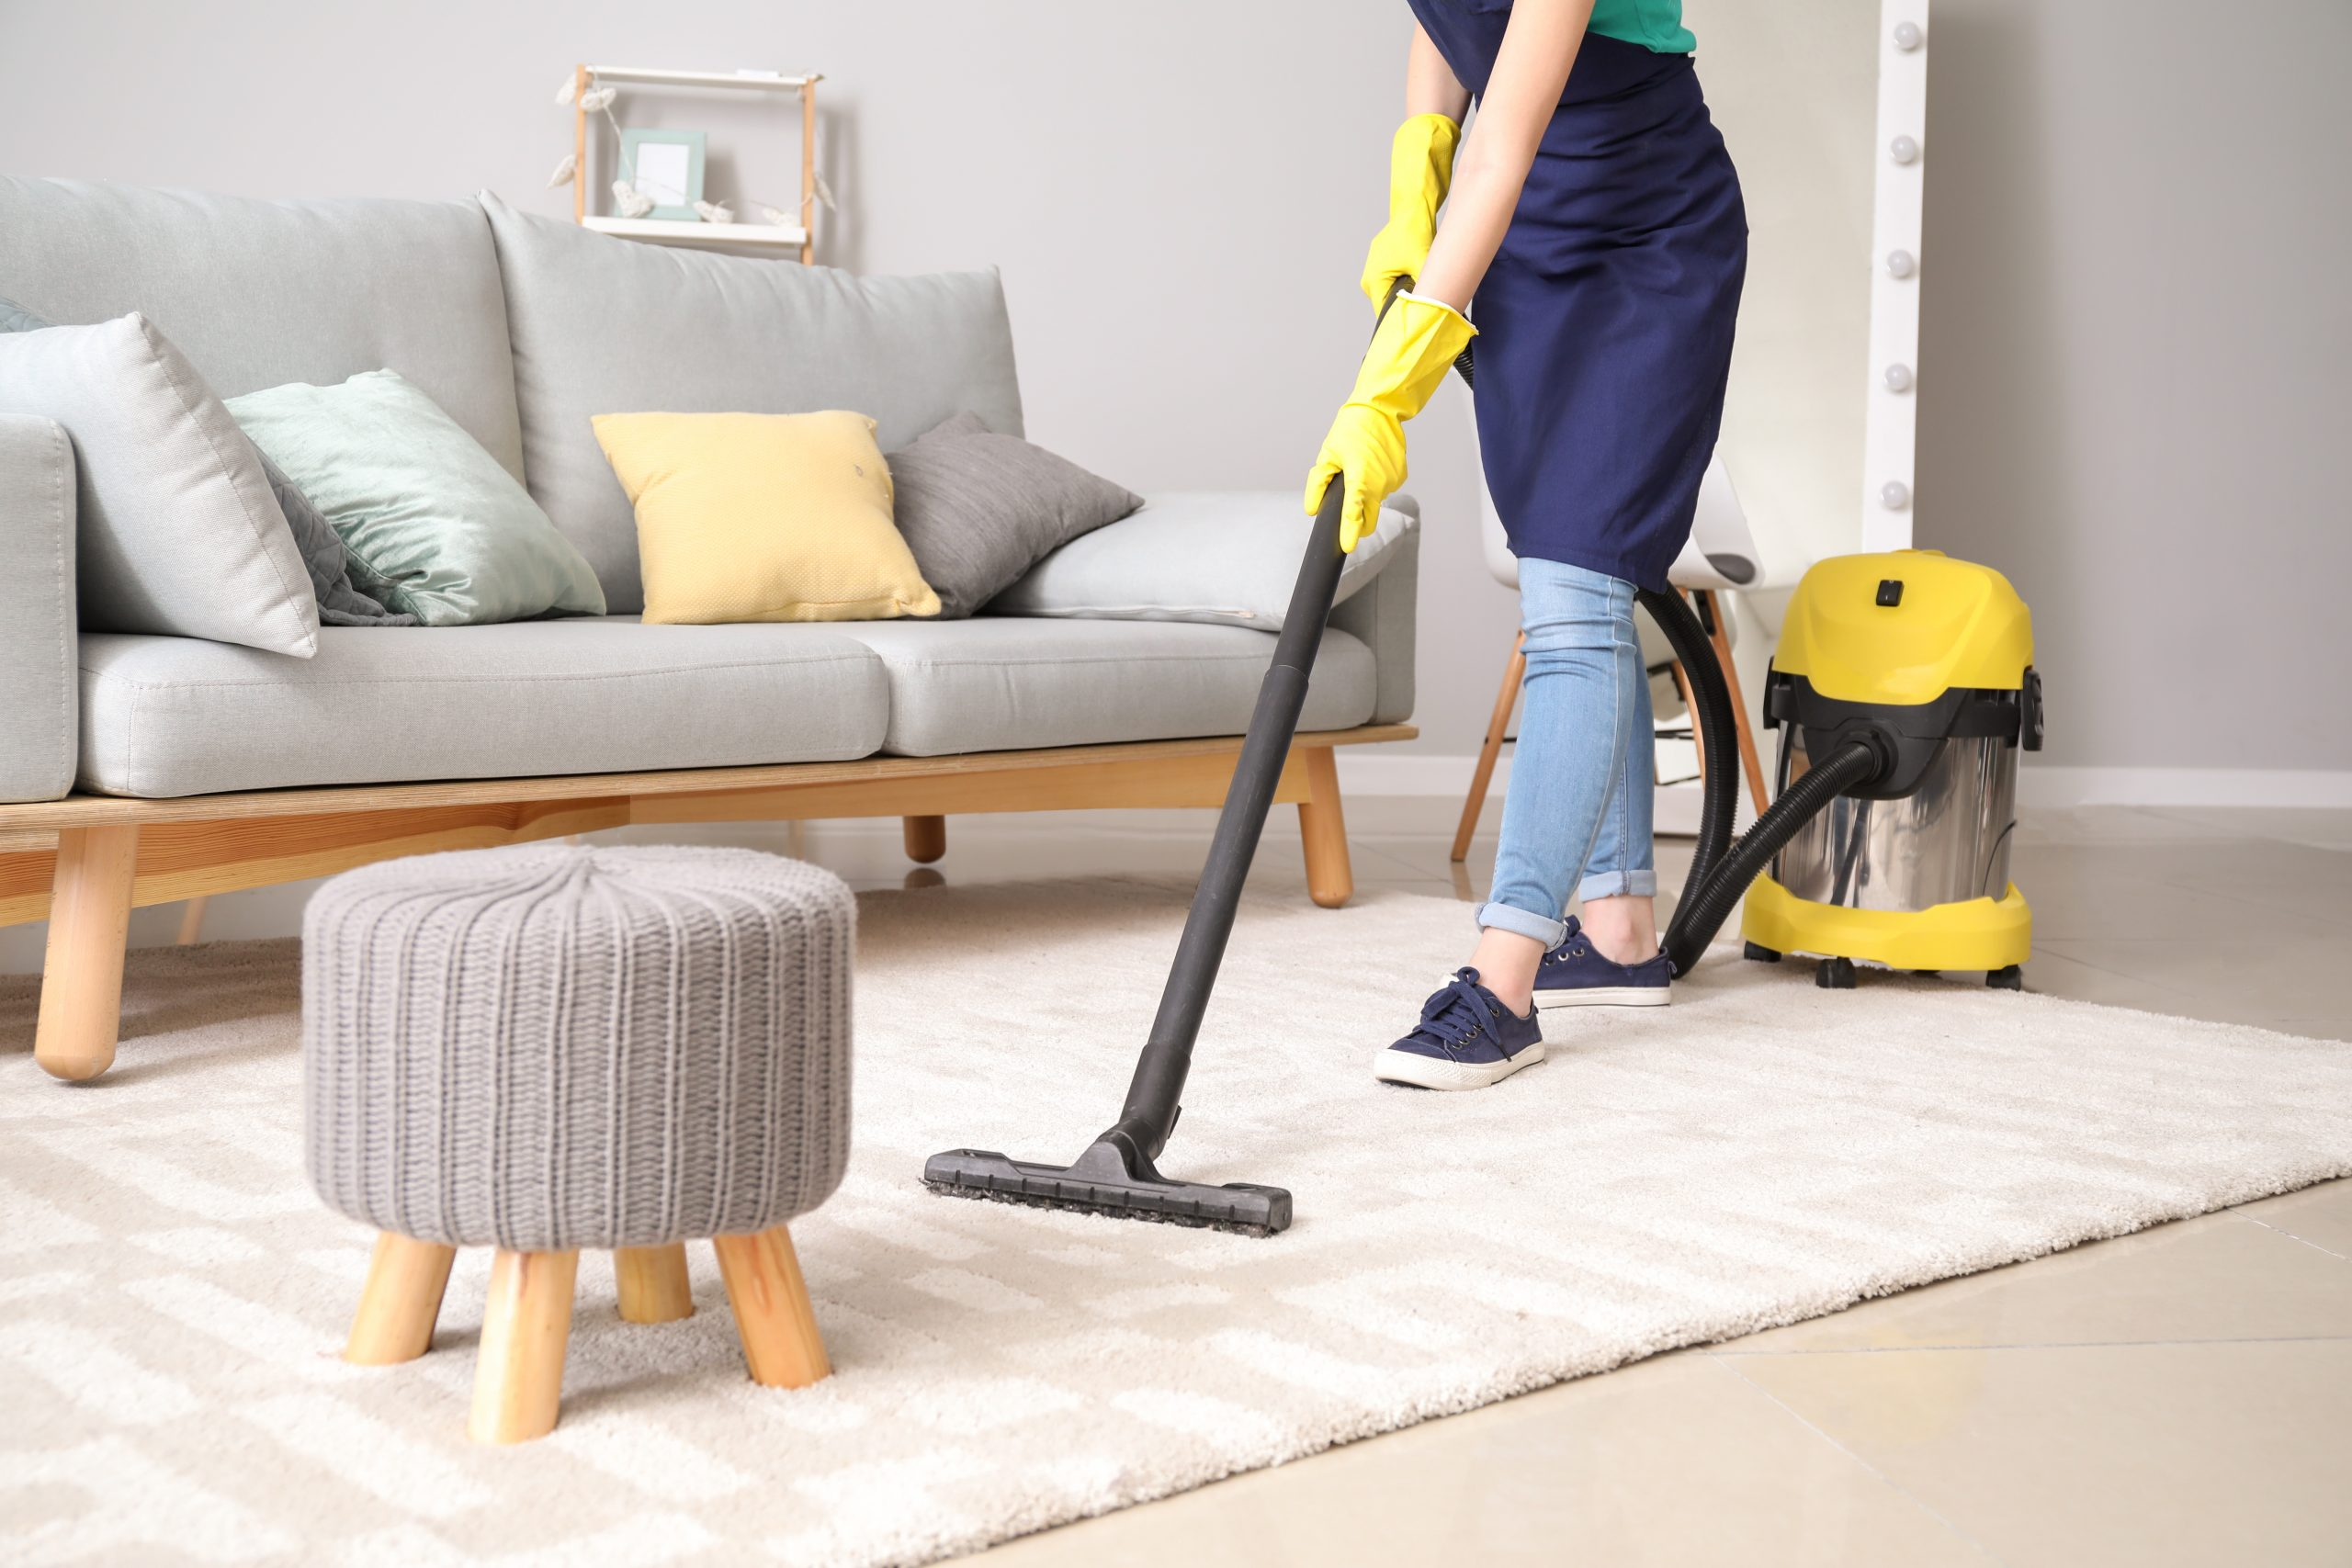 Top Rated in Carpet & Upholstery Cleaning Machines & Helpful Customer  Reviews - Amazon.com